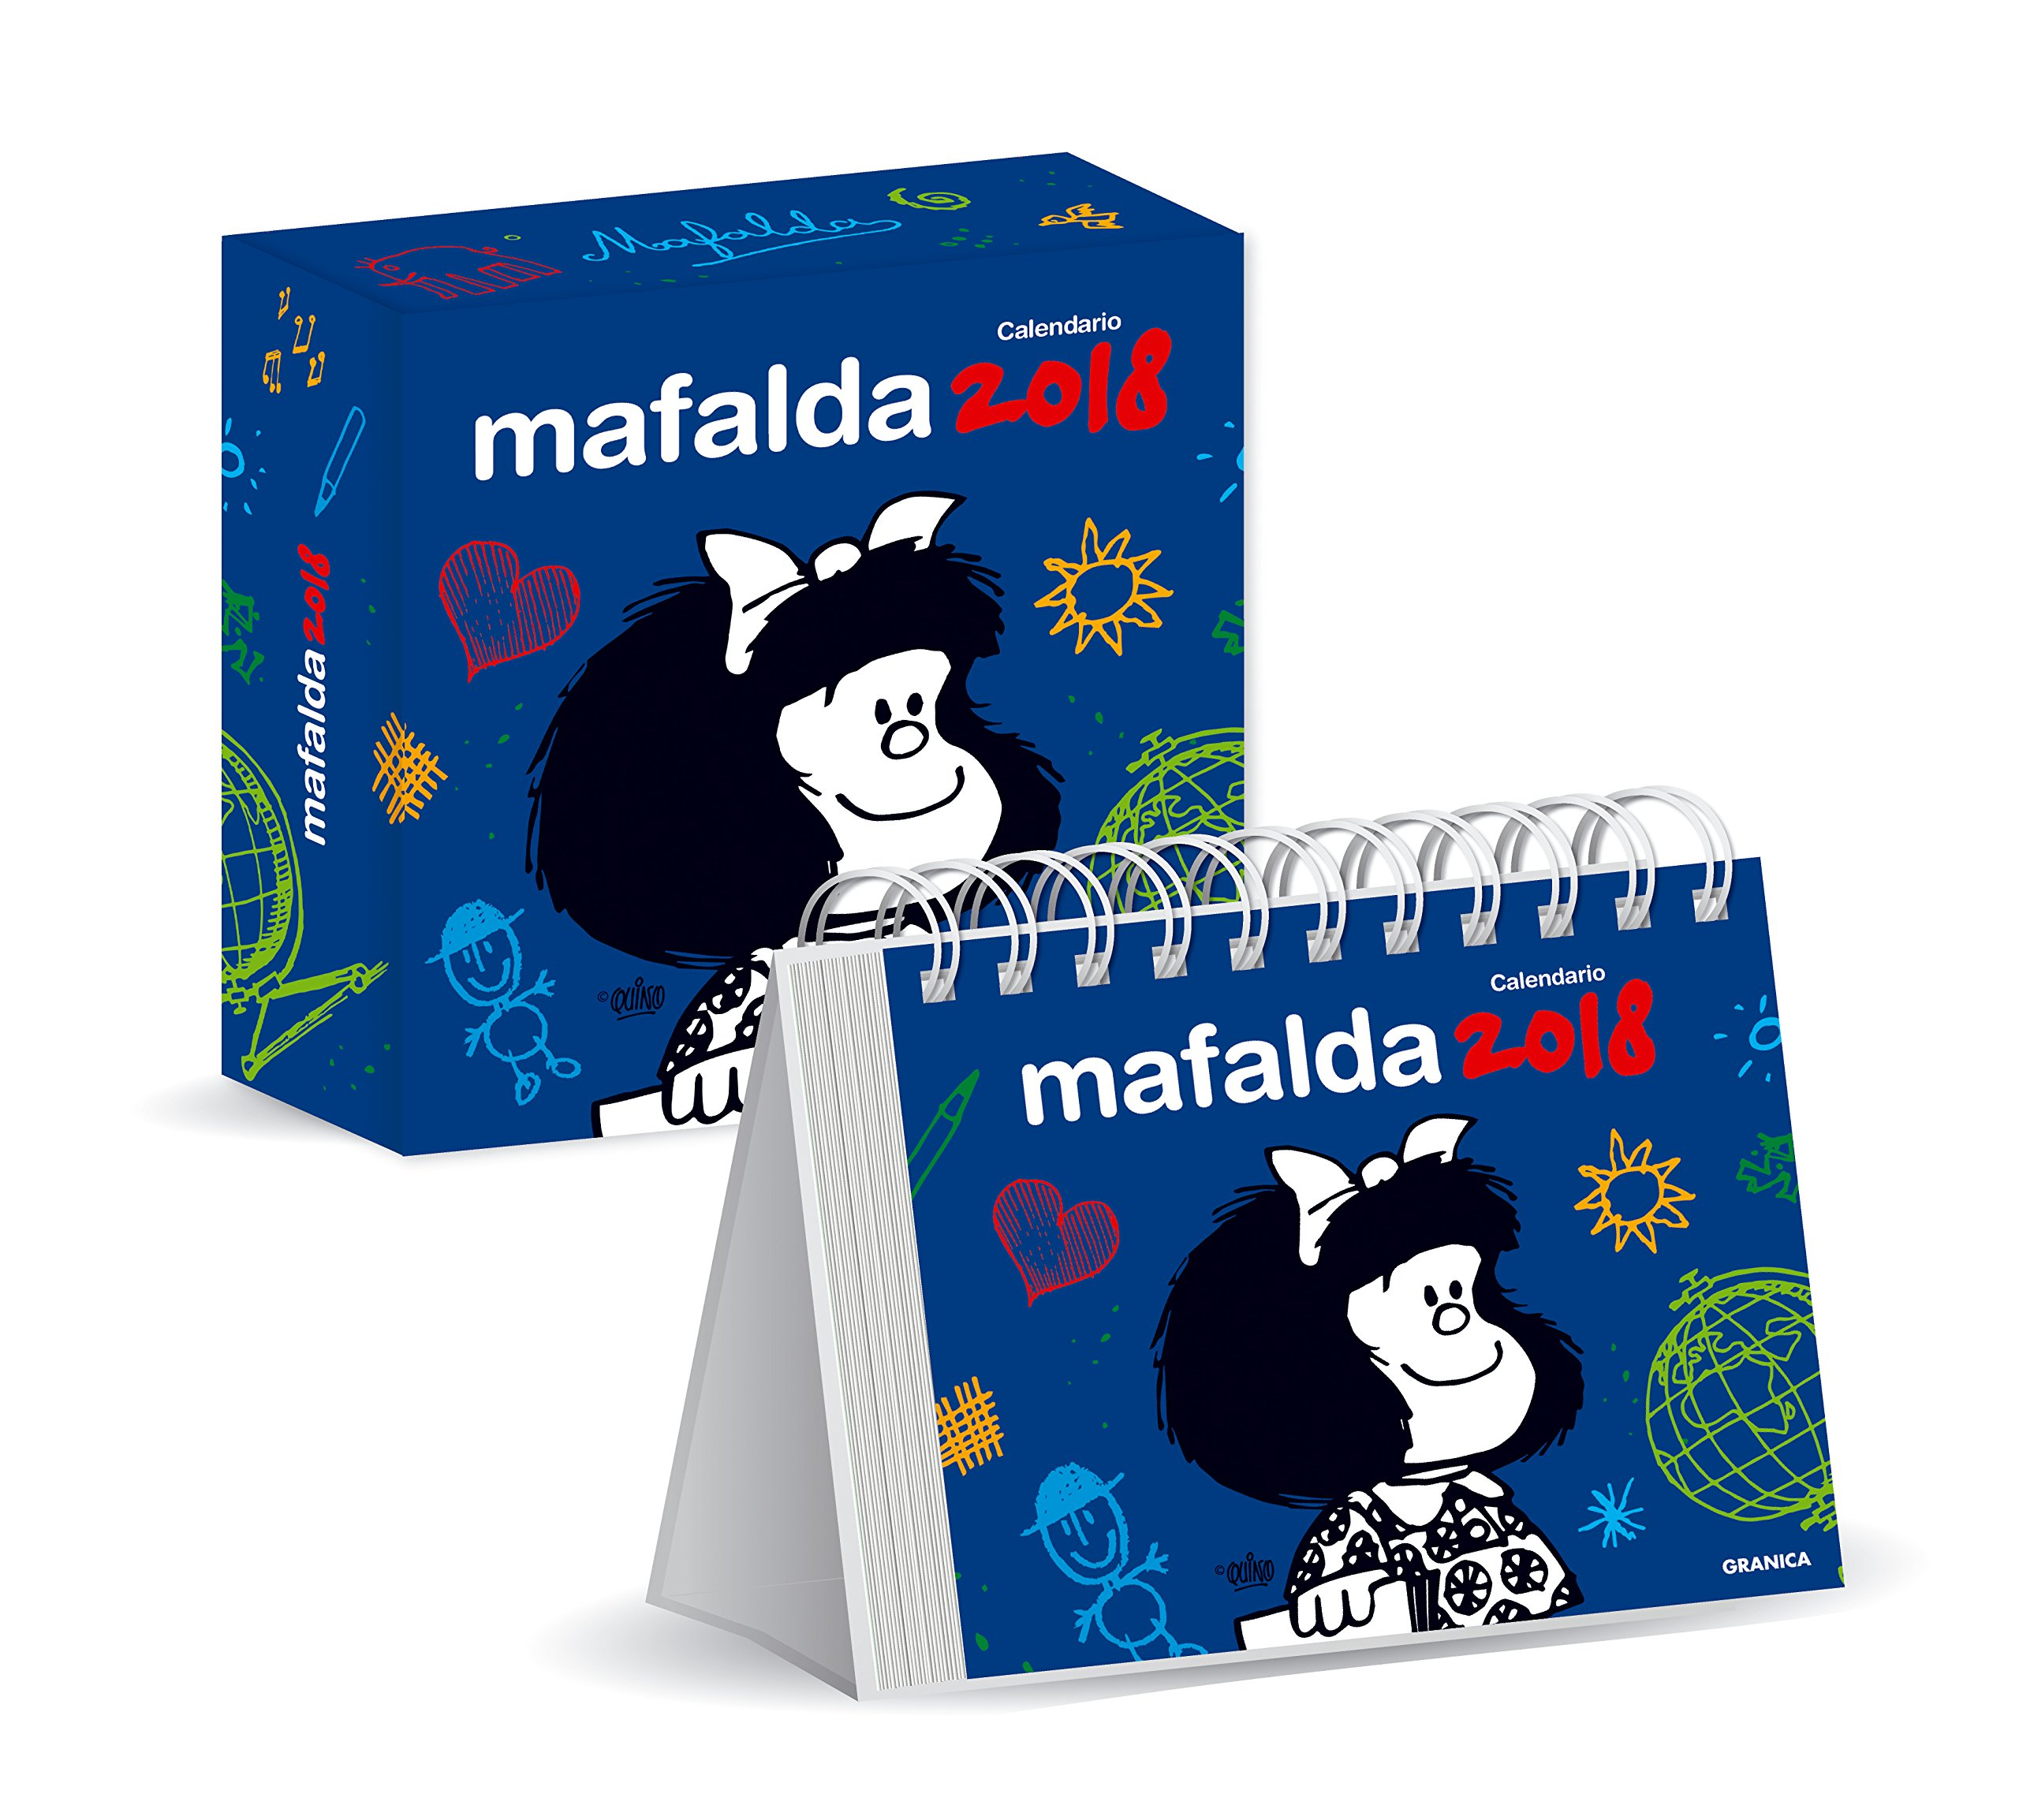 Mafalda 2018 Calendario de escritorio con caja - Azul (Spanish Edition): Quino: 7798071445105: Amazon.com: Books